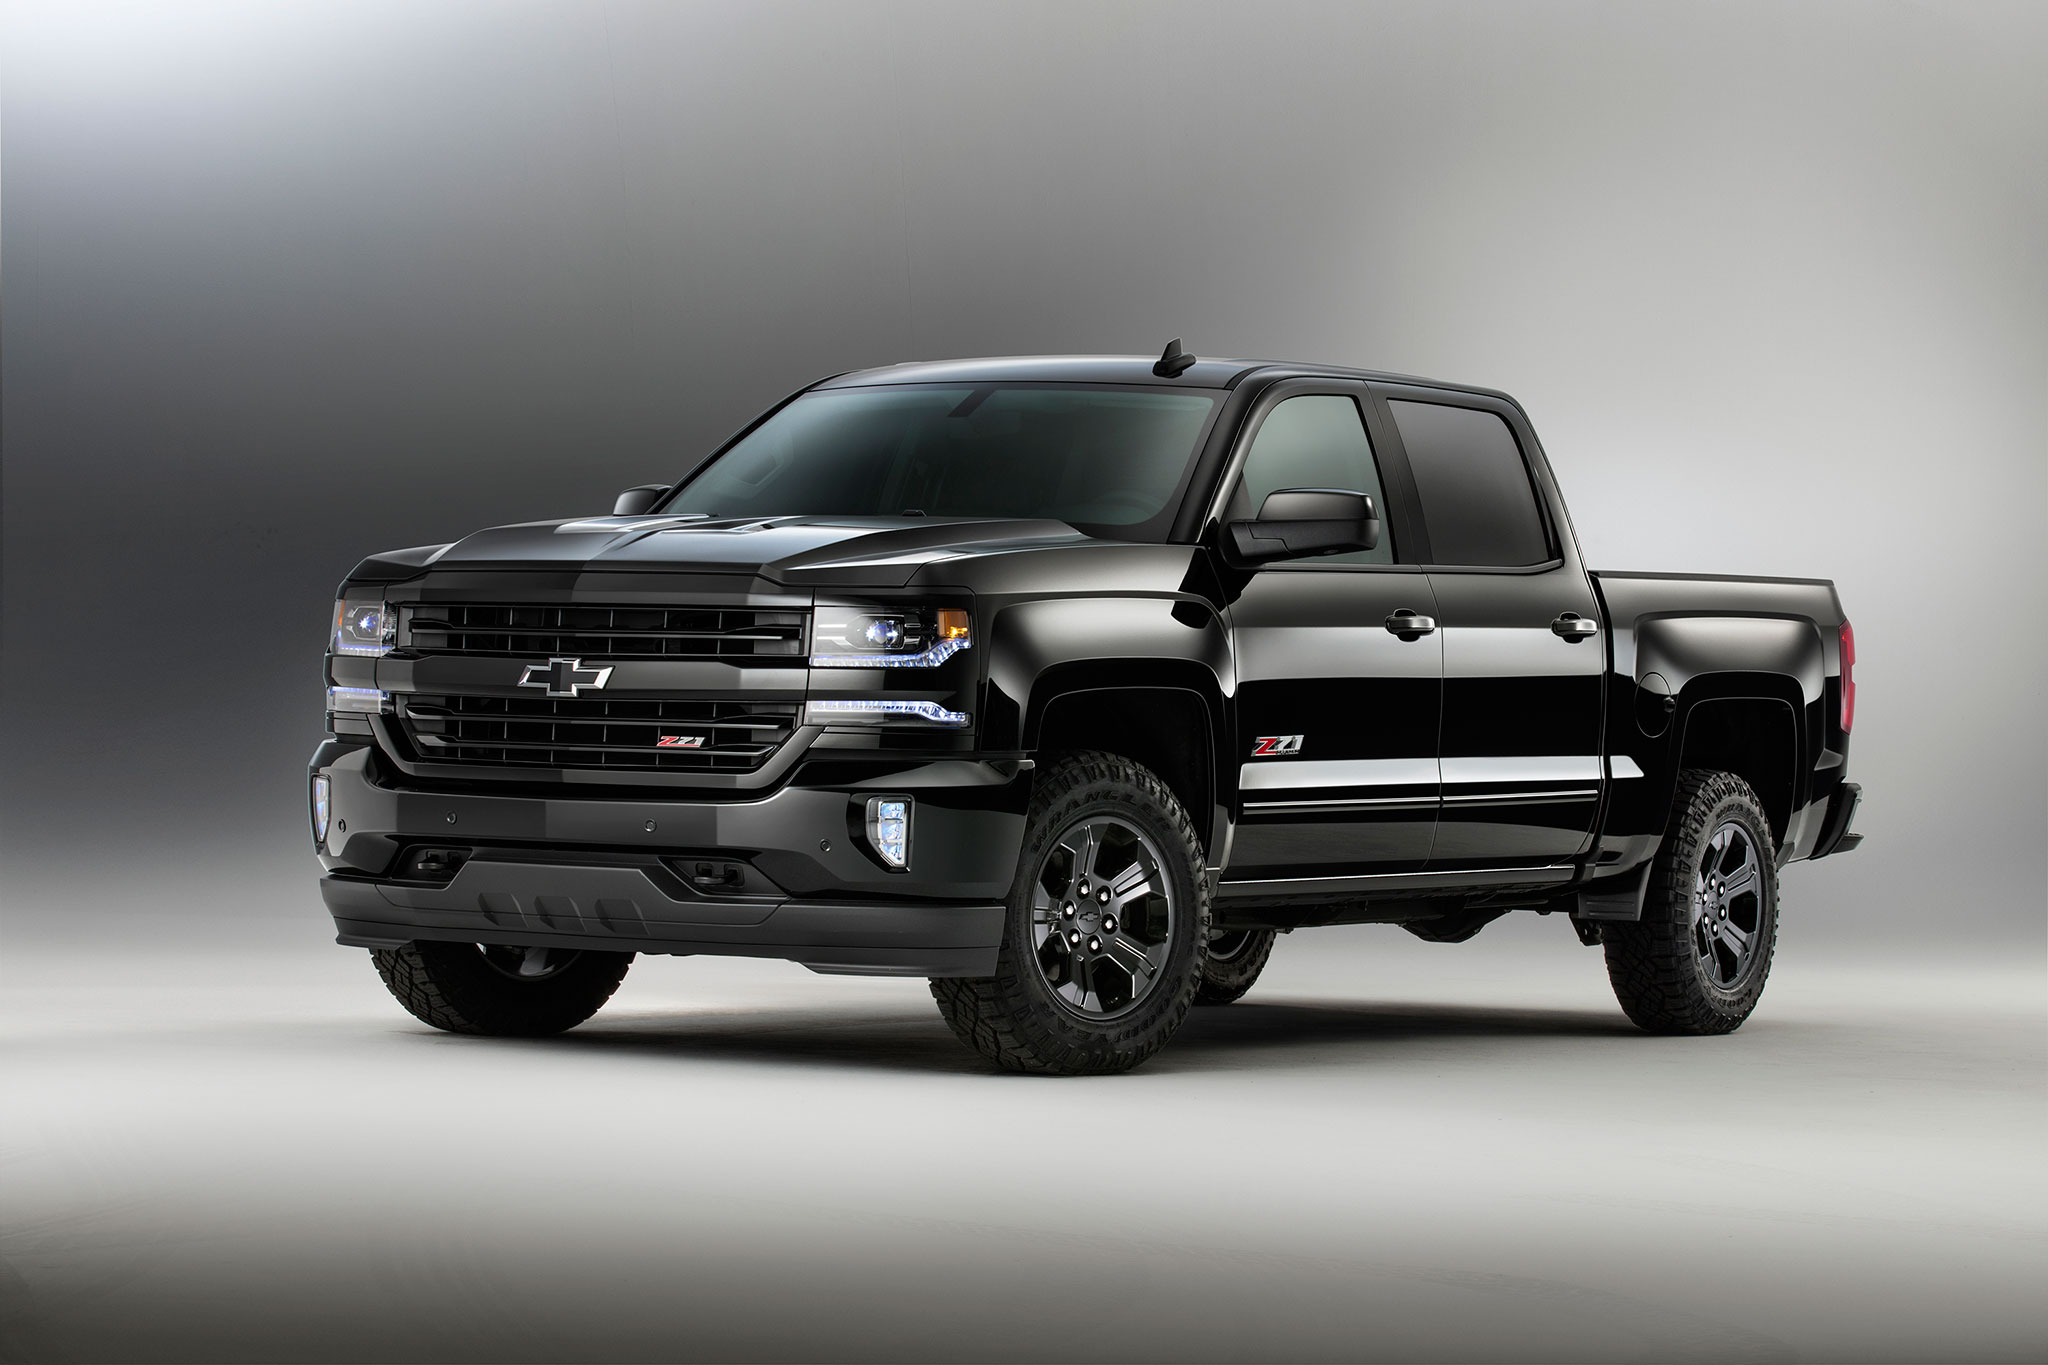 Chevy Silverado Texas Edition >> 2016 Chevrolet Silverado Rally Edition Debuts in Texas | Automobile Magazine